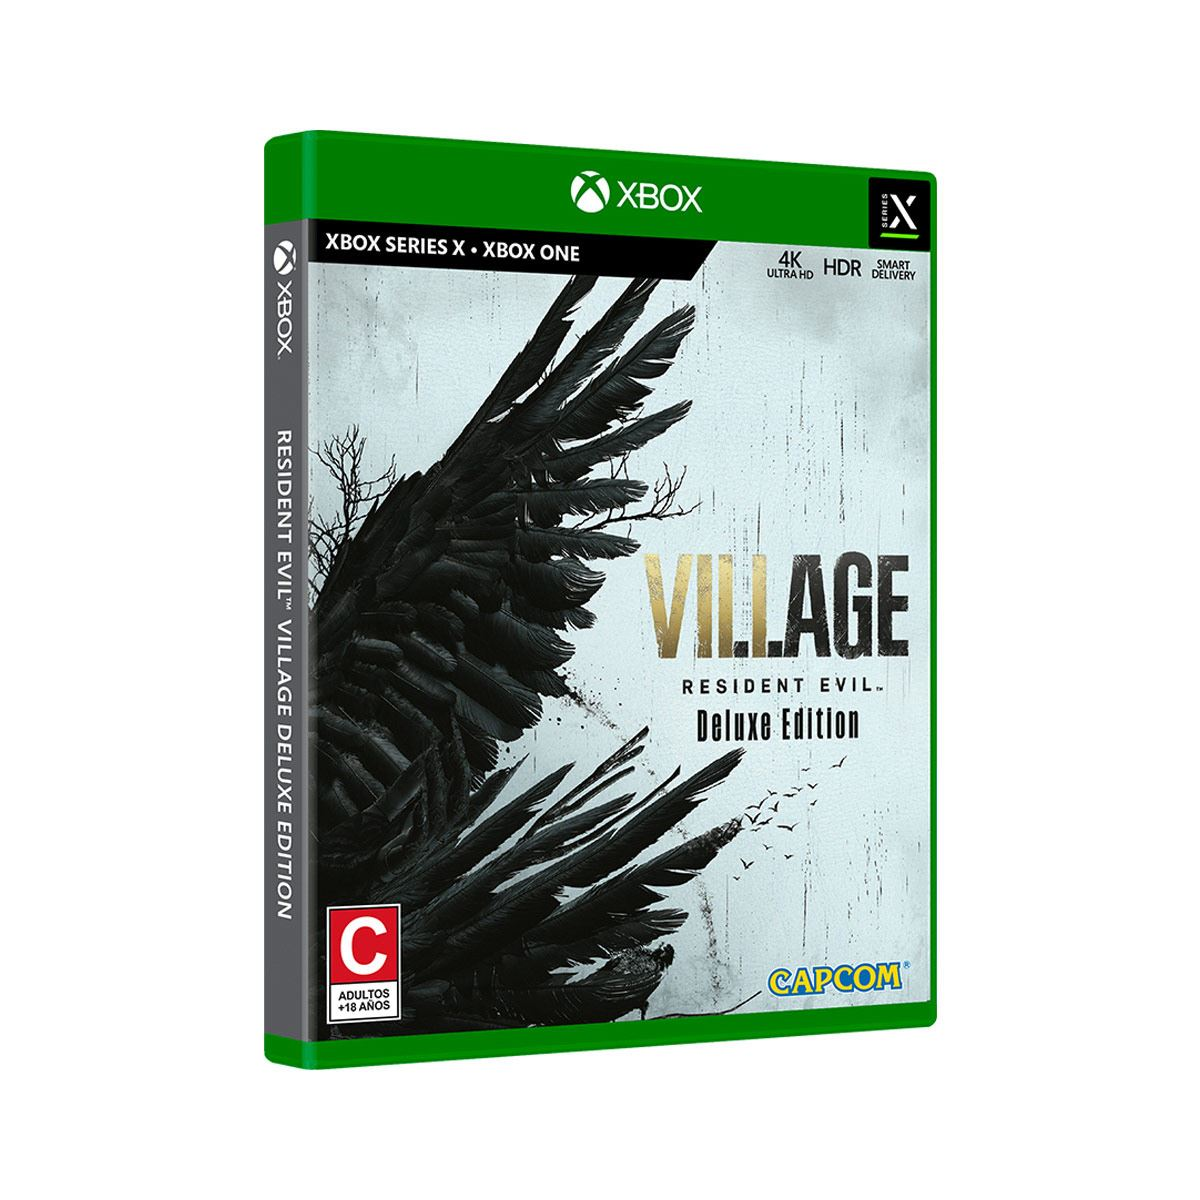 Xbox One Resident Evil Village Deluxe